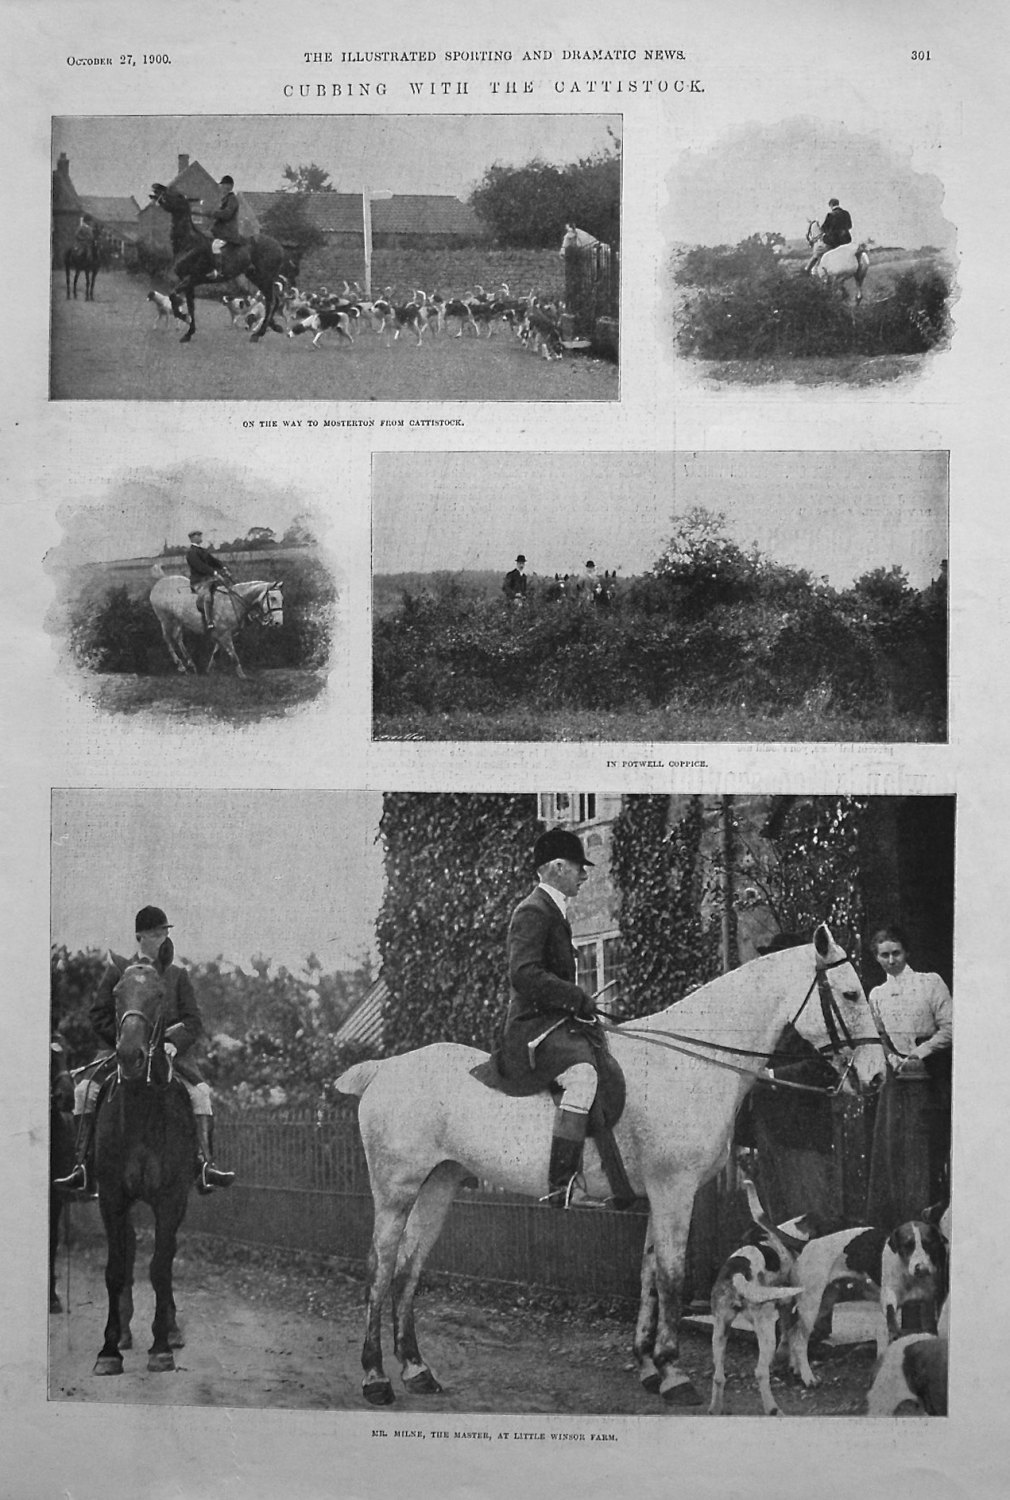 Cubbing with the Cattistock. 1900